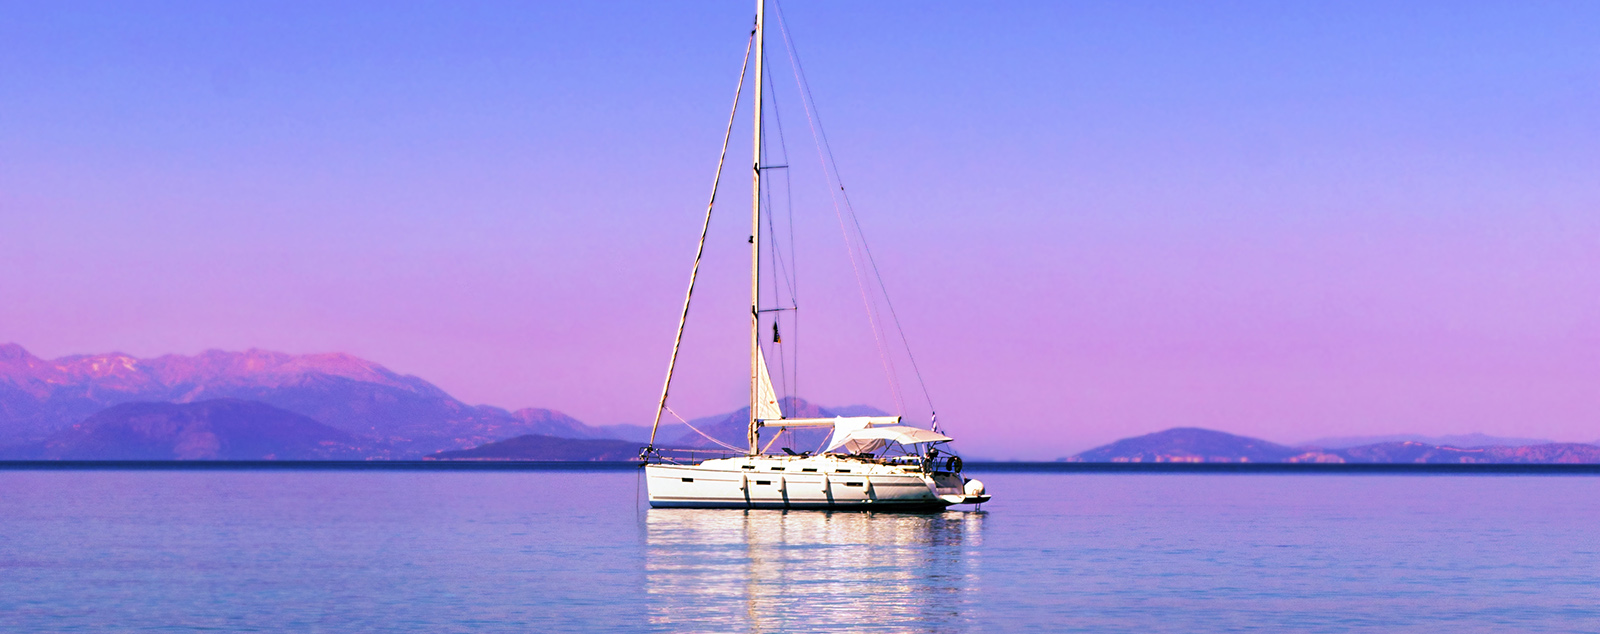 White yatch on the water with a light purple hue to the background